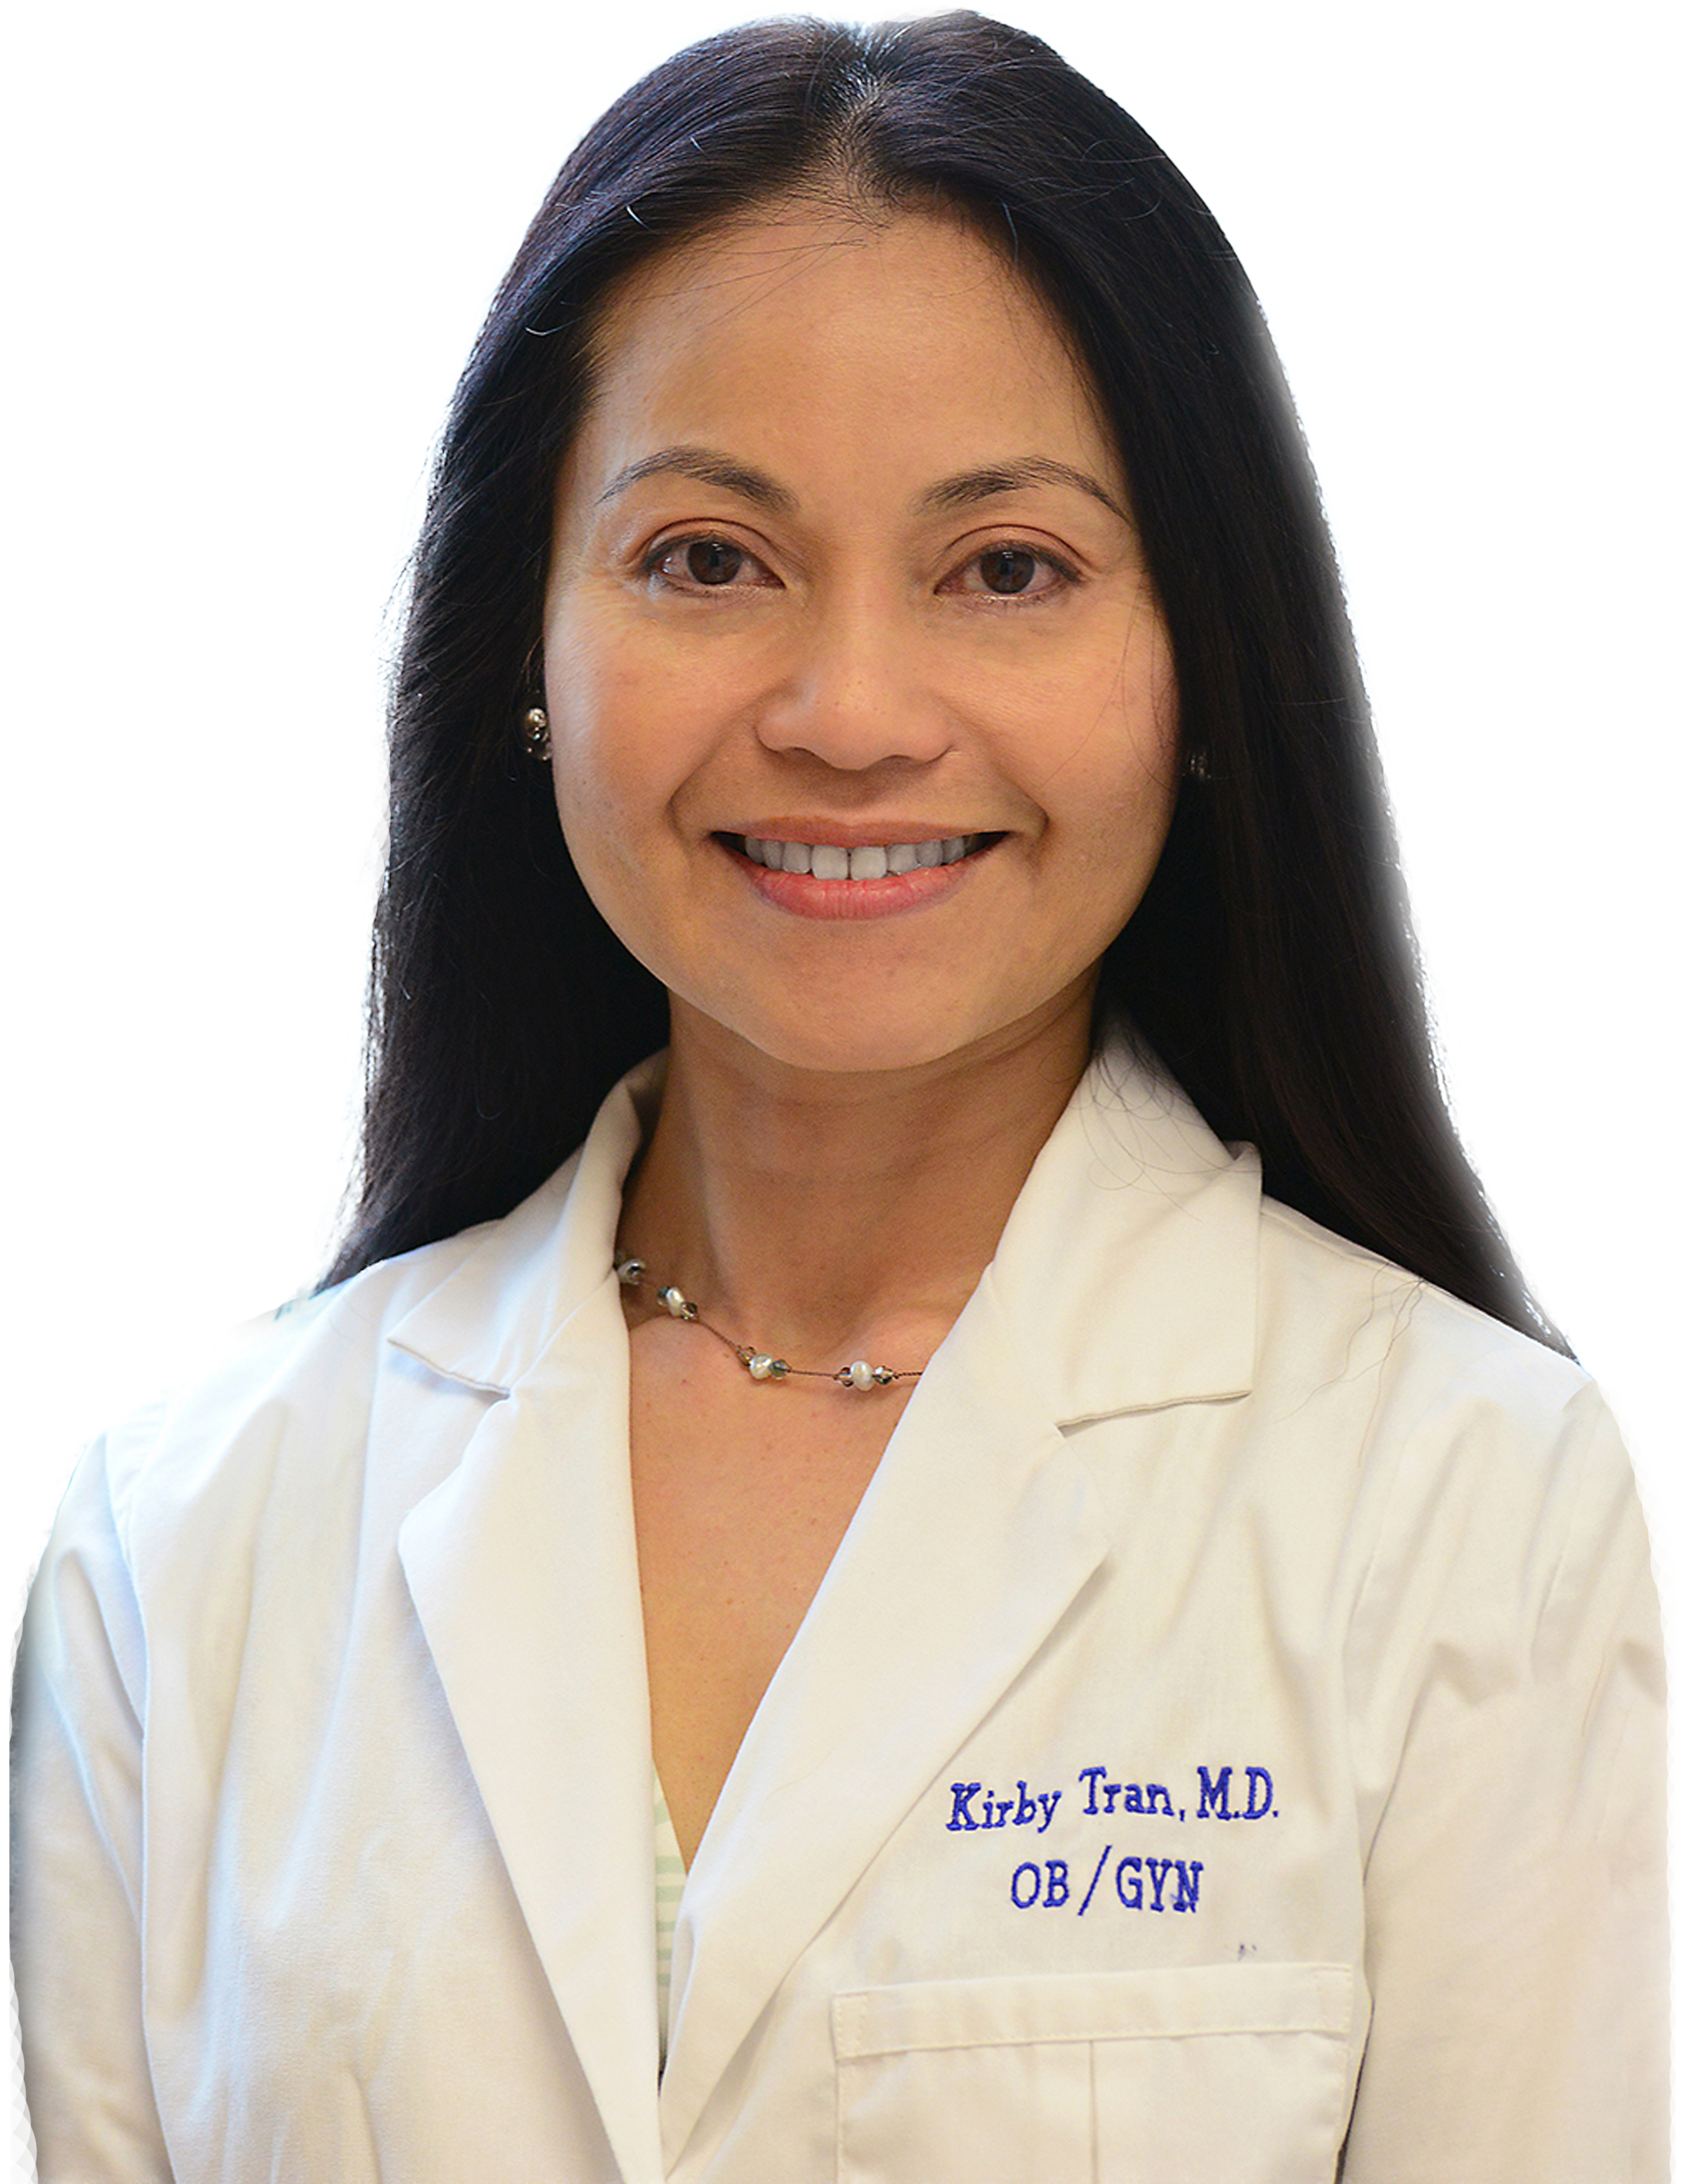 Woman Good Health - Dr. Kirby Tran